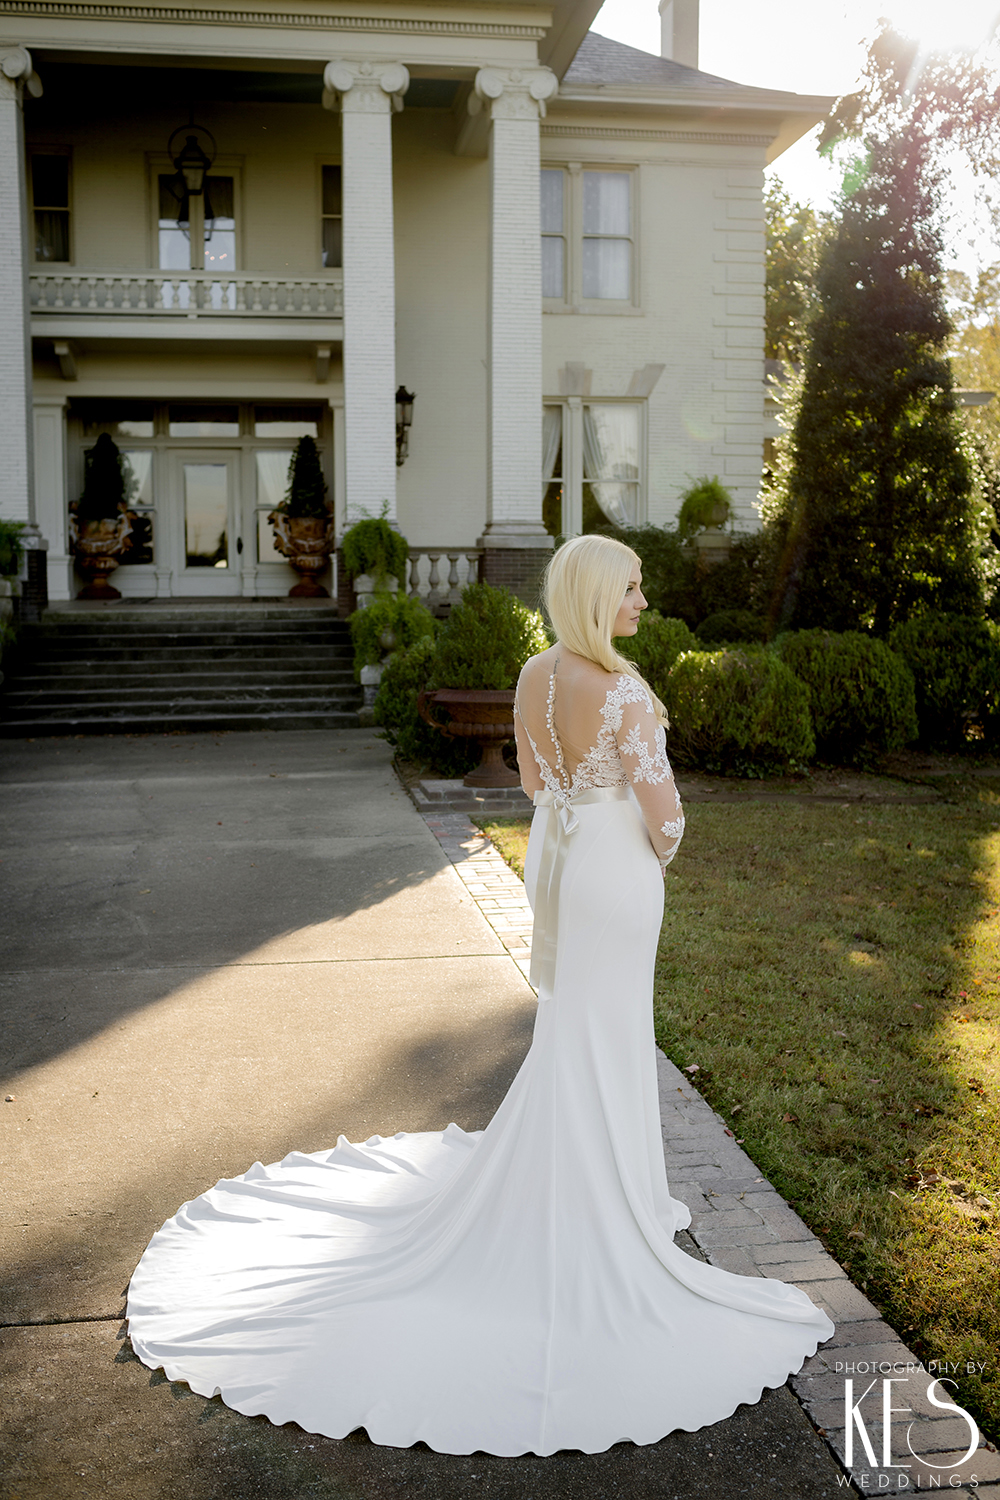 Marlsgate_Bridals_KES_Weddings_14.JPG